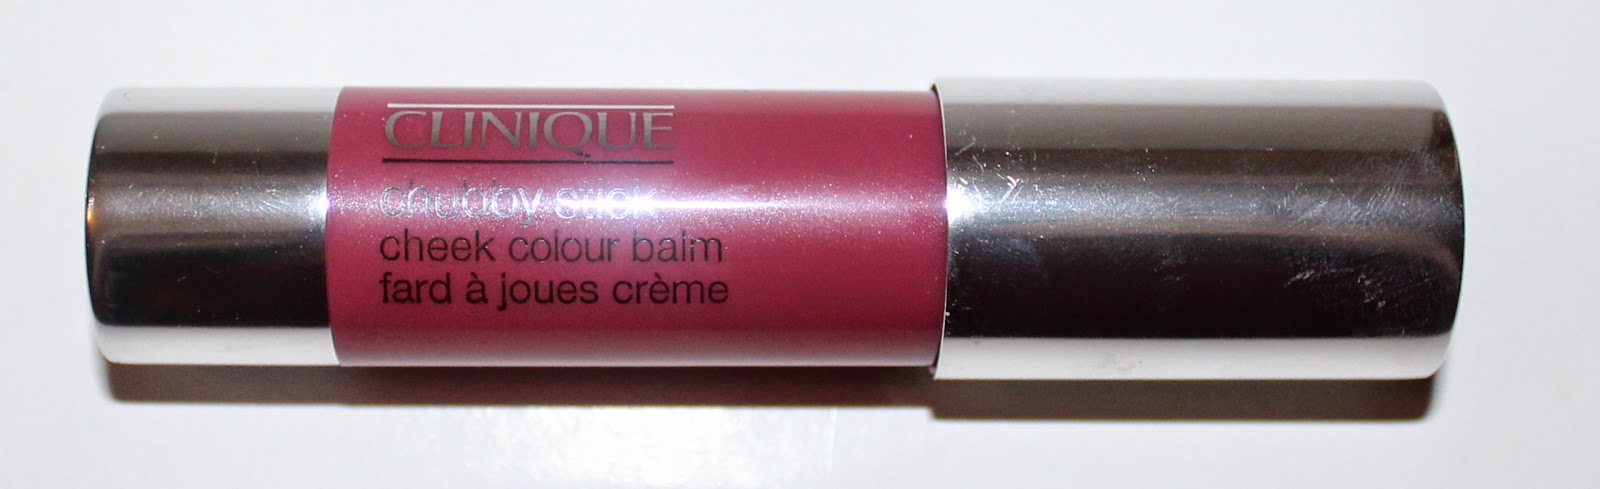 Clinique Chubby Stick Cheek Colour Balm in Plumped Up Peony